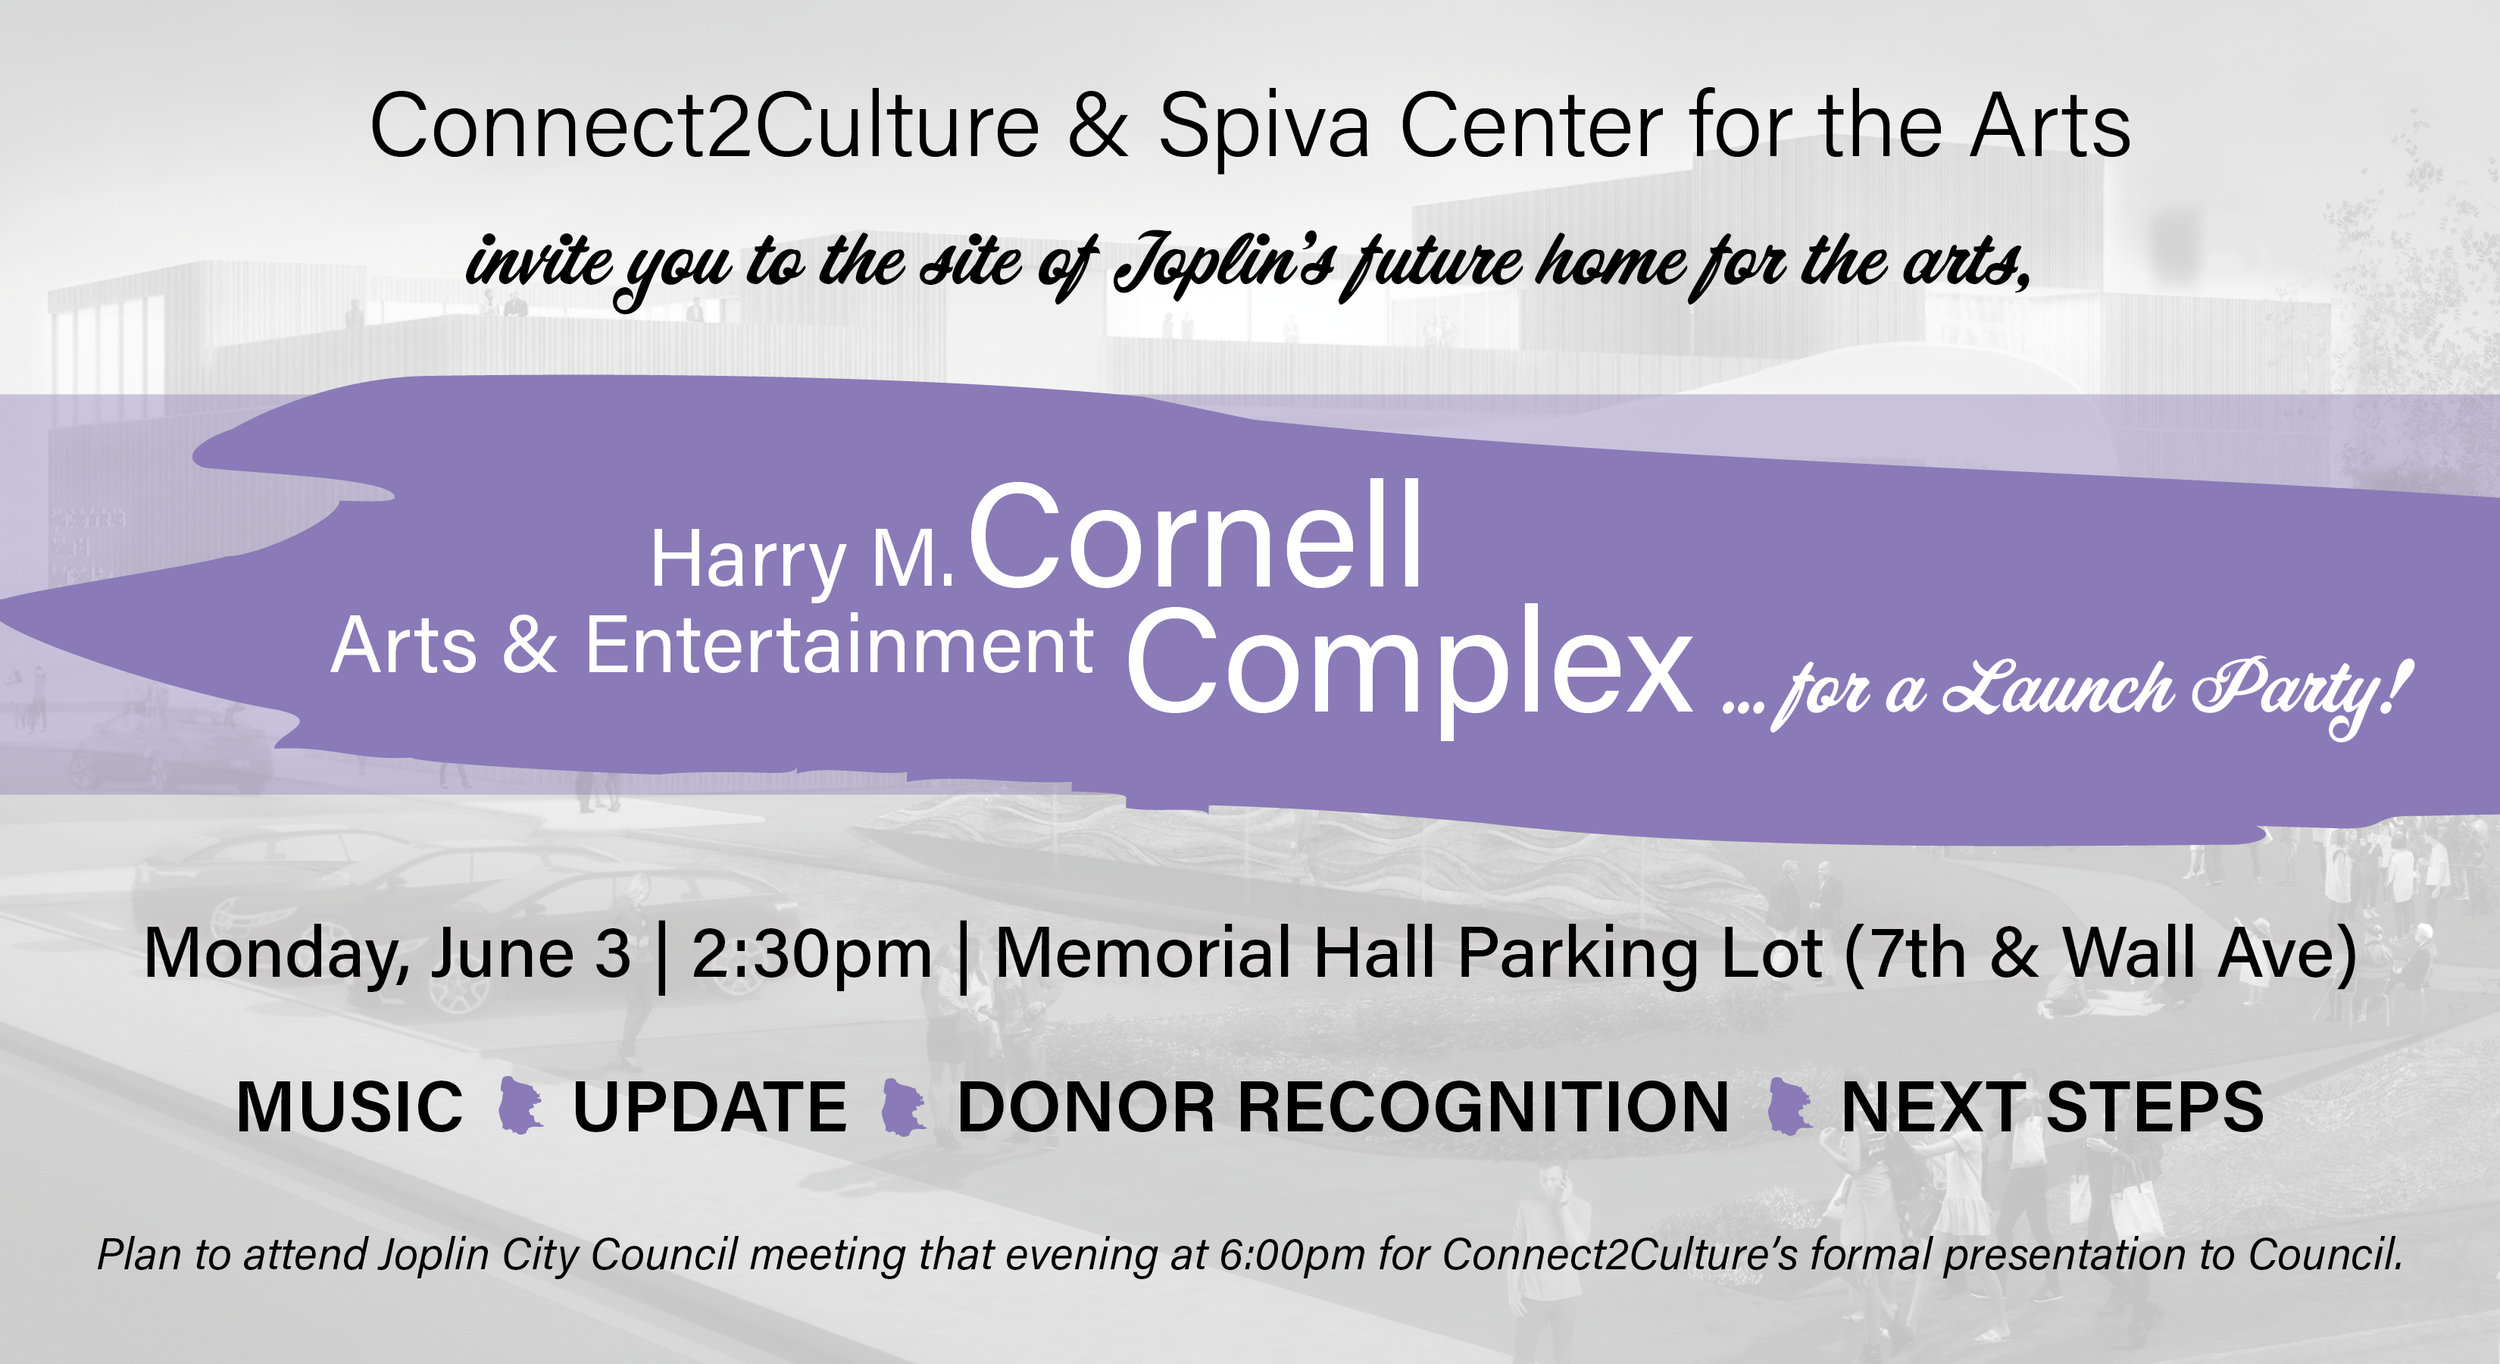 cornell-complex-launch-party.jpg